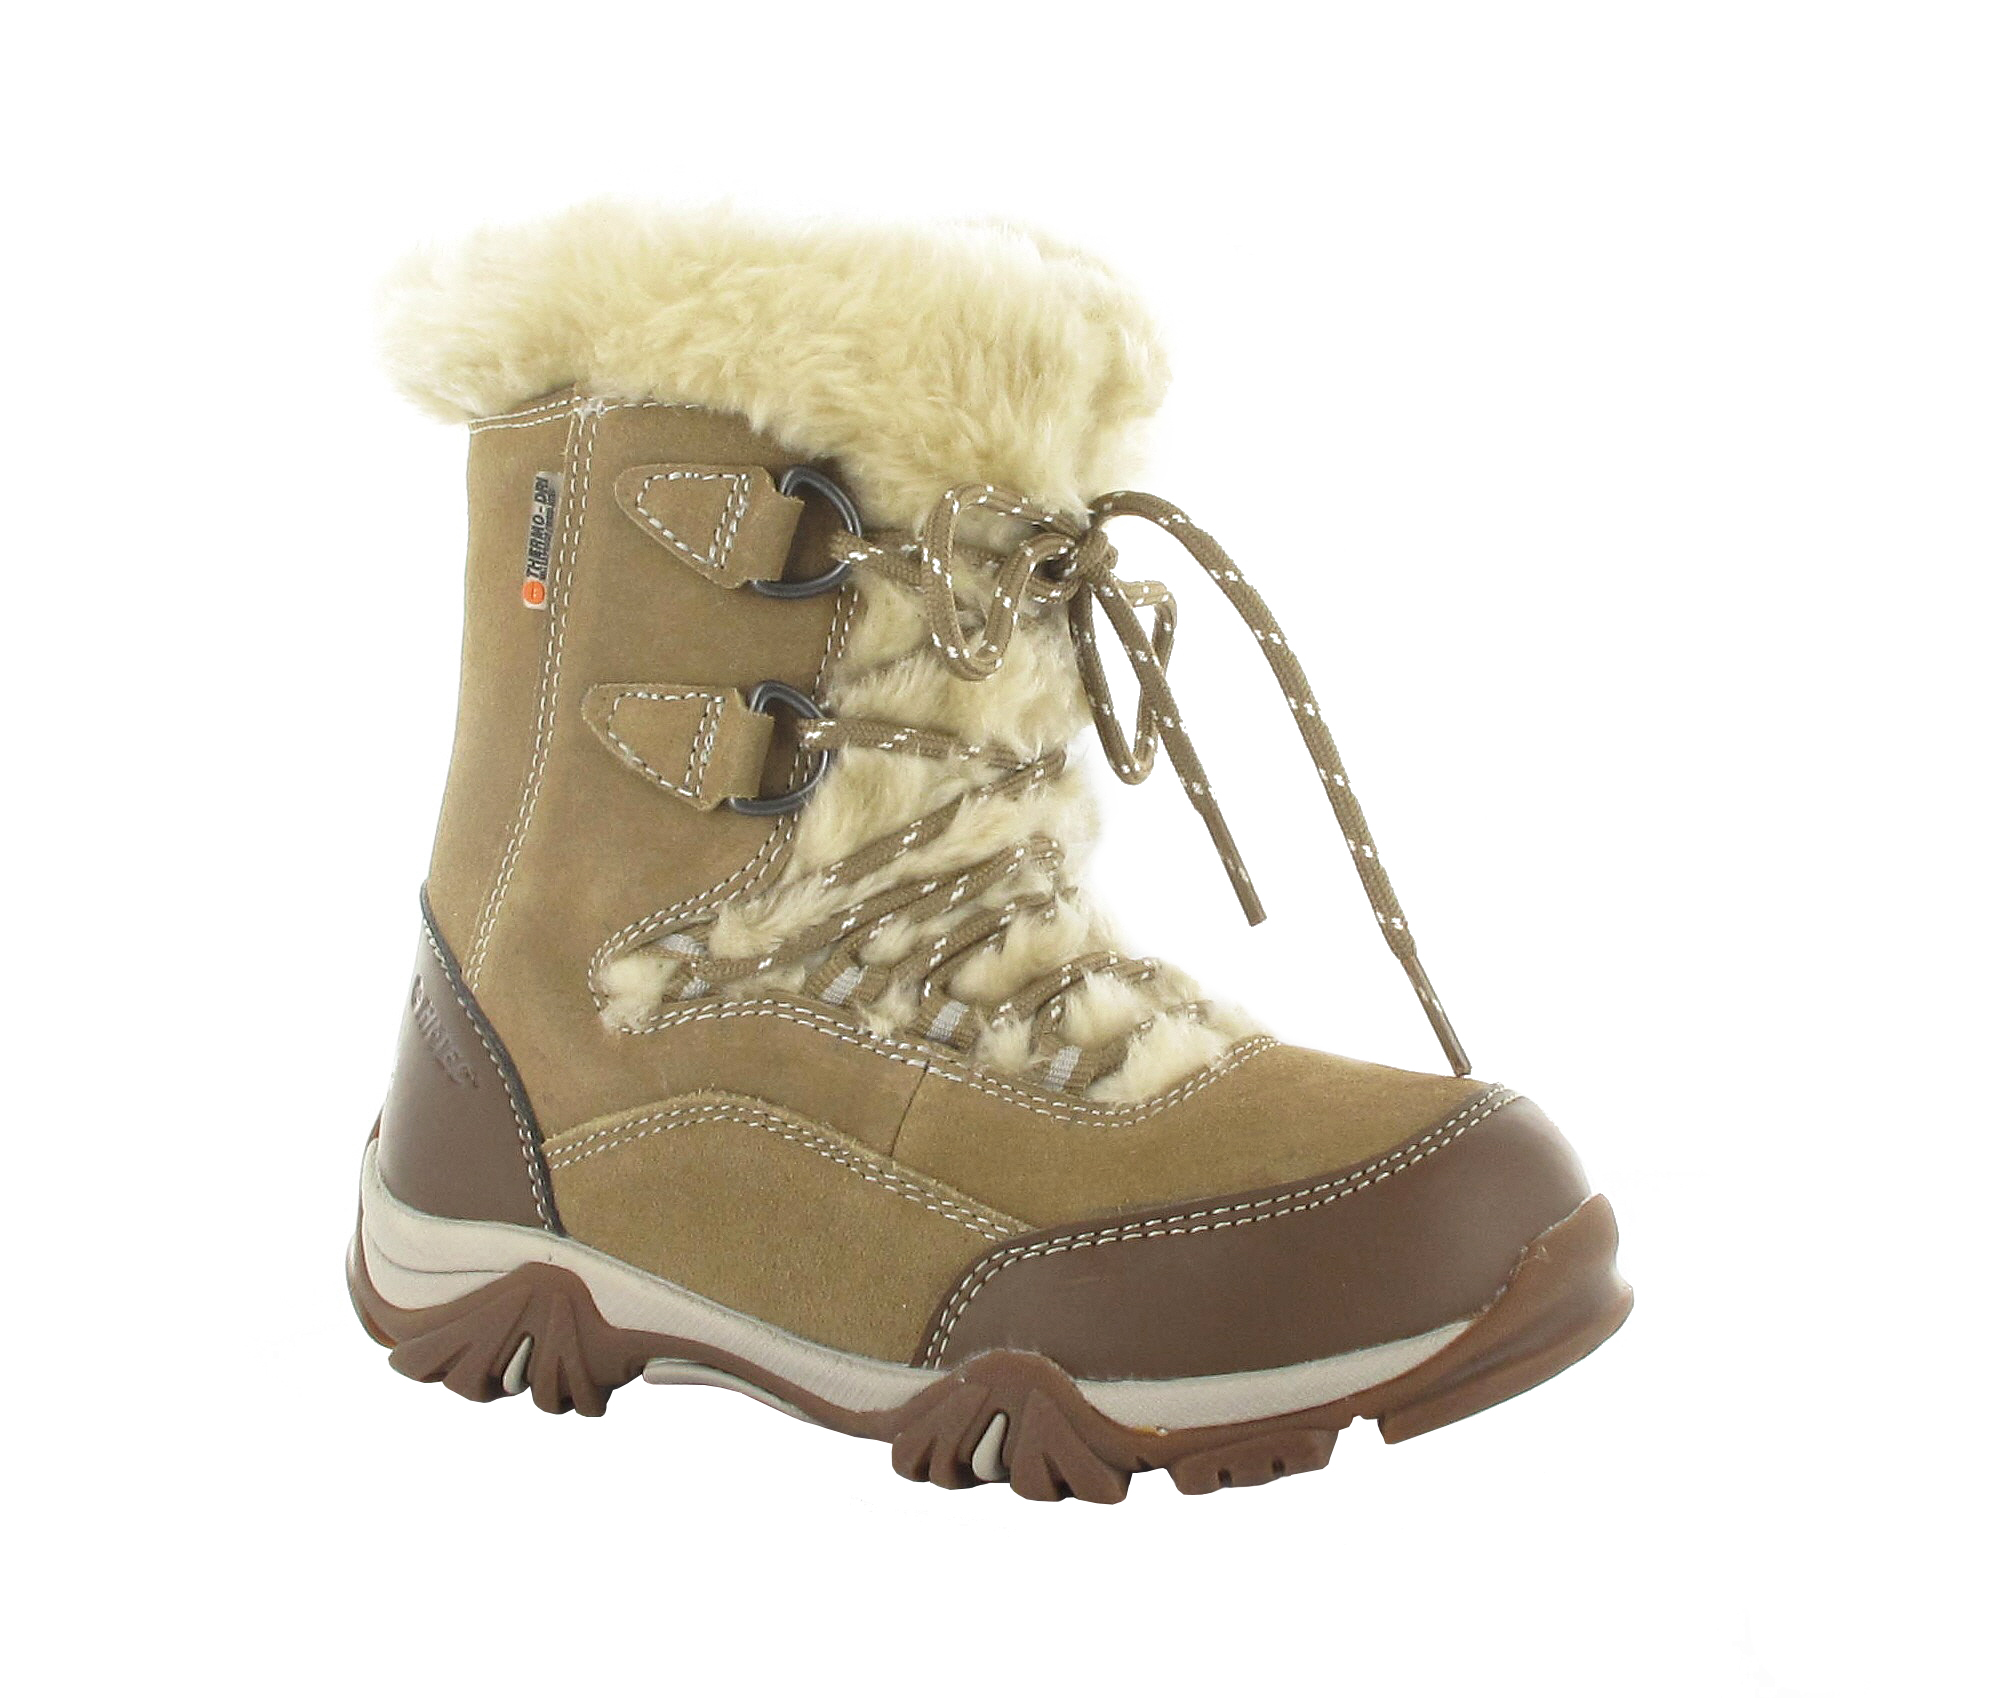 saint moritz single women Buy hi-tec women's st moritz 200 insulated boot and other snow boots at amazoncom our wide selection is eligible for free shipping and free returns.